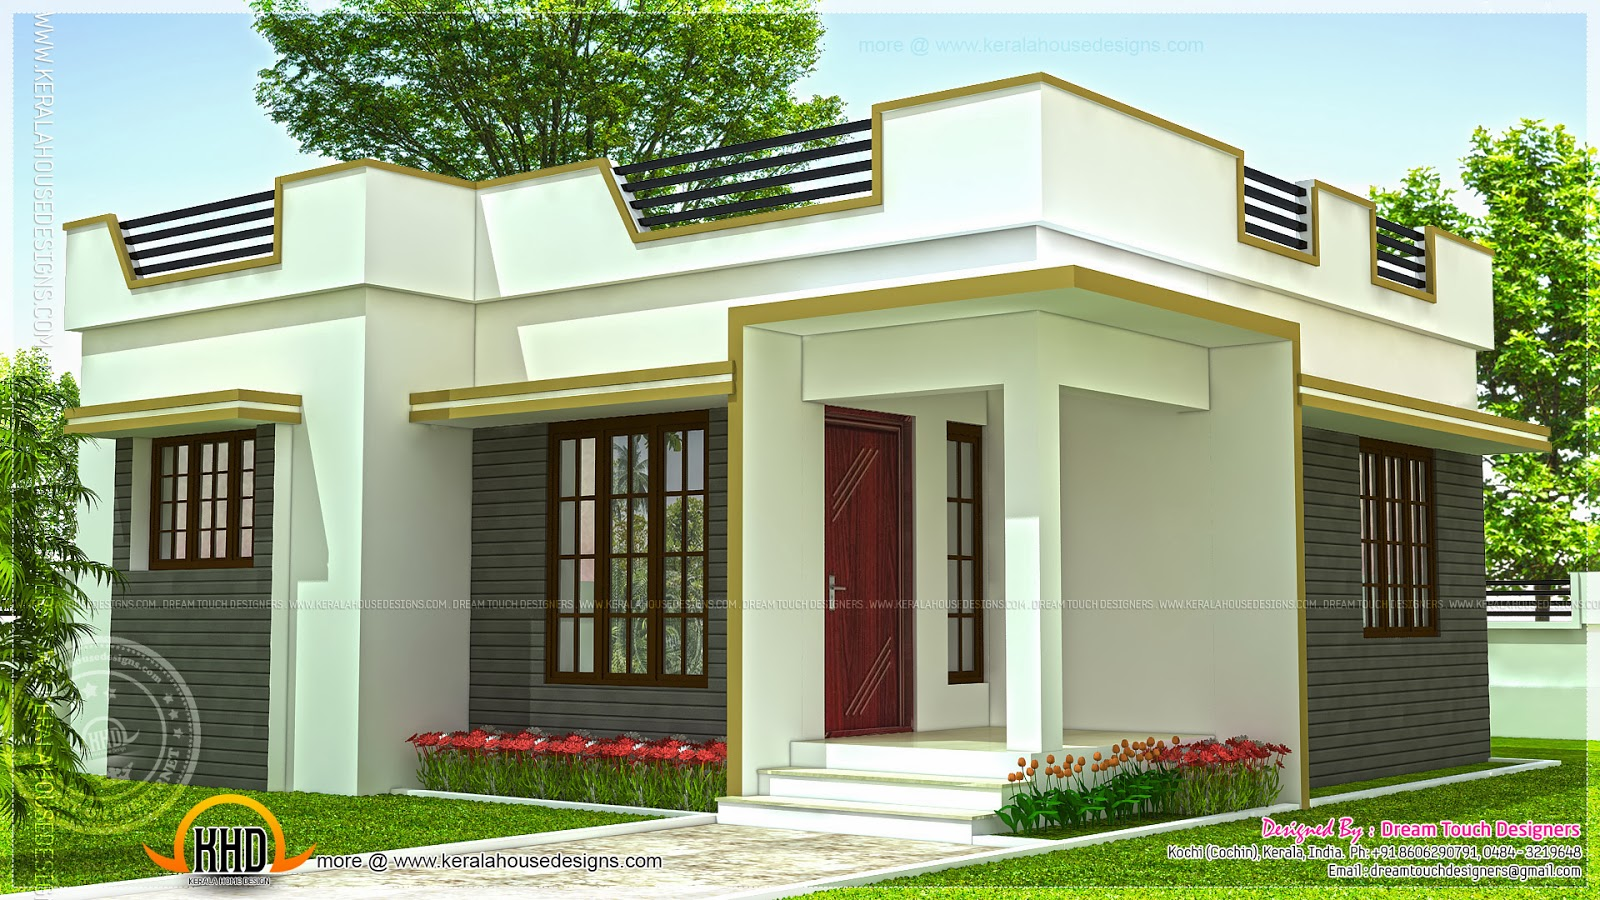 35 small and simple but beautiful house with roof deck for Beautiful model house